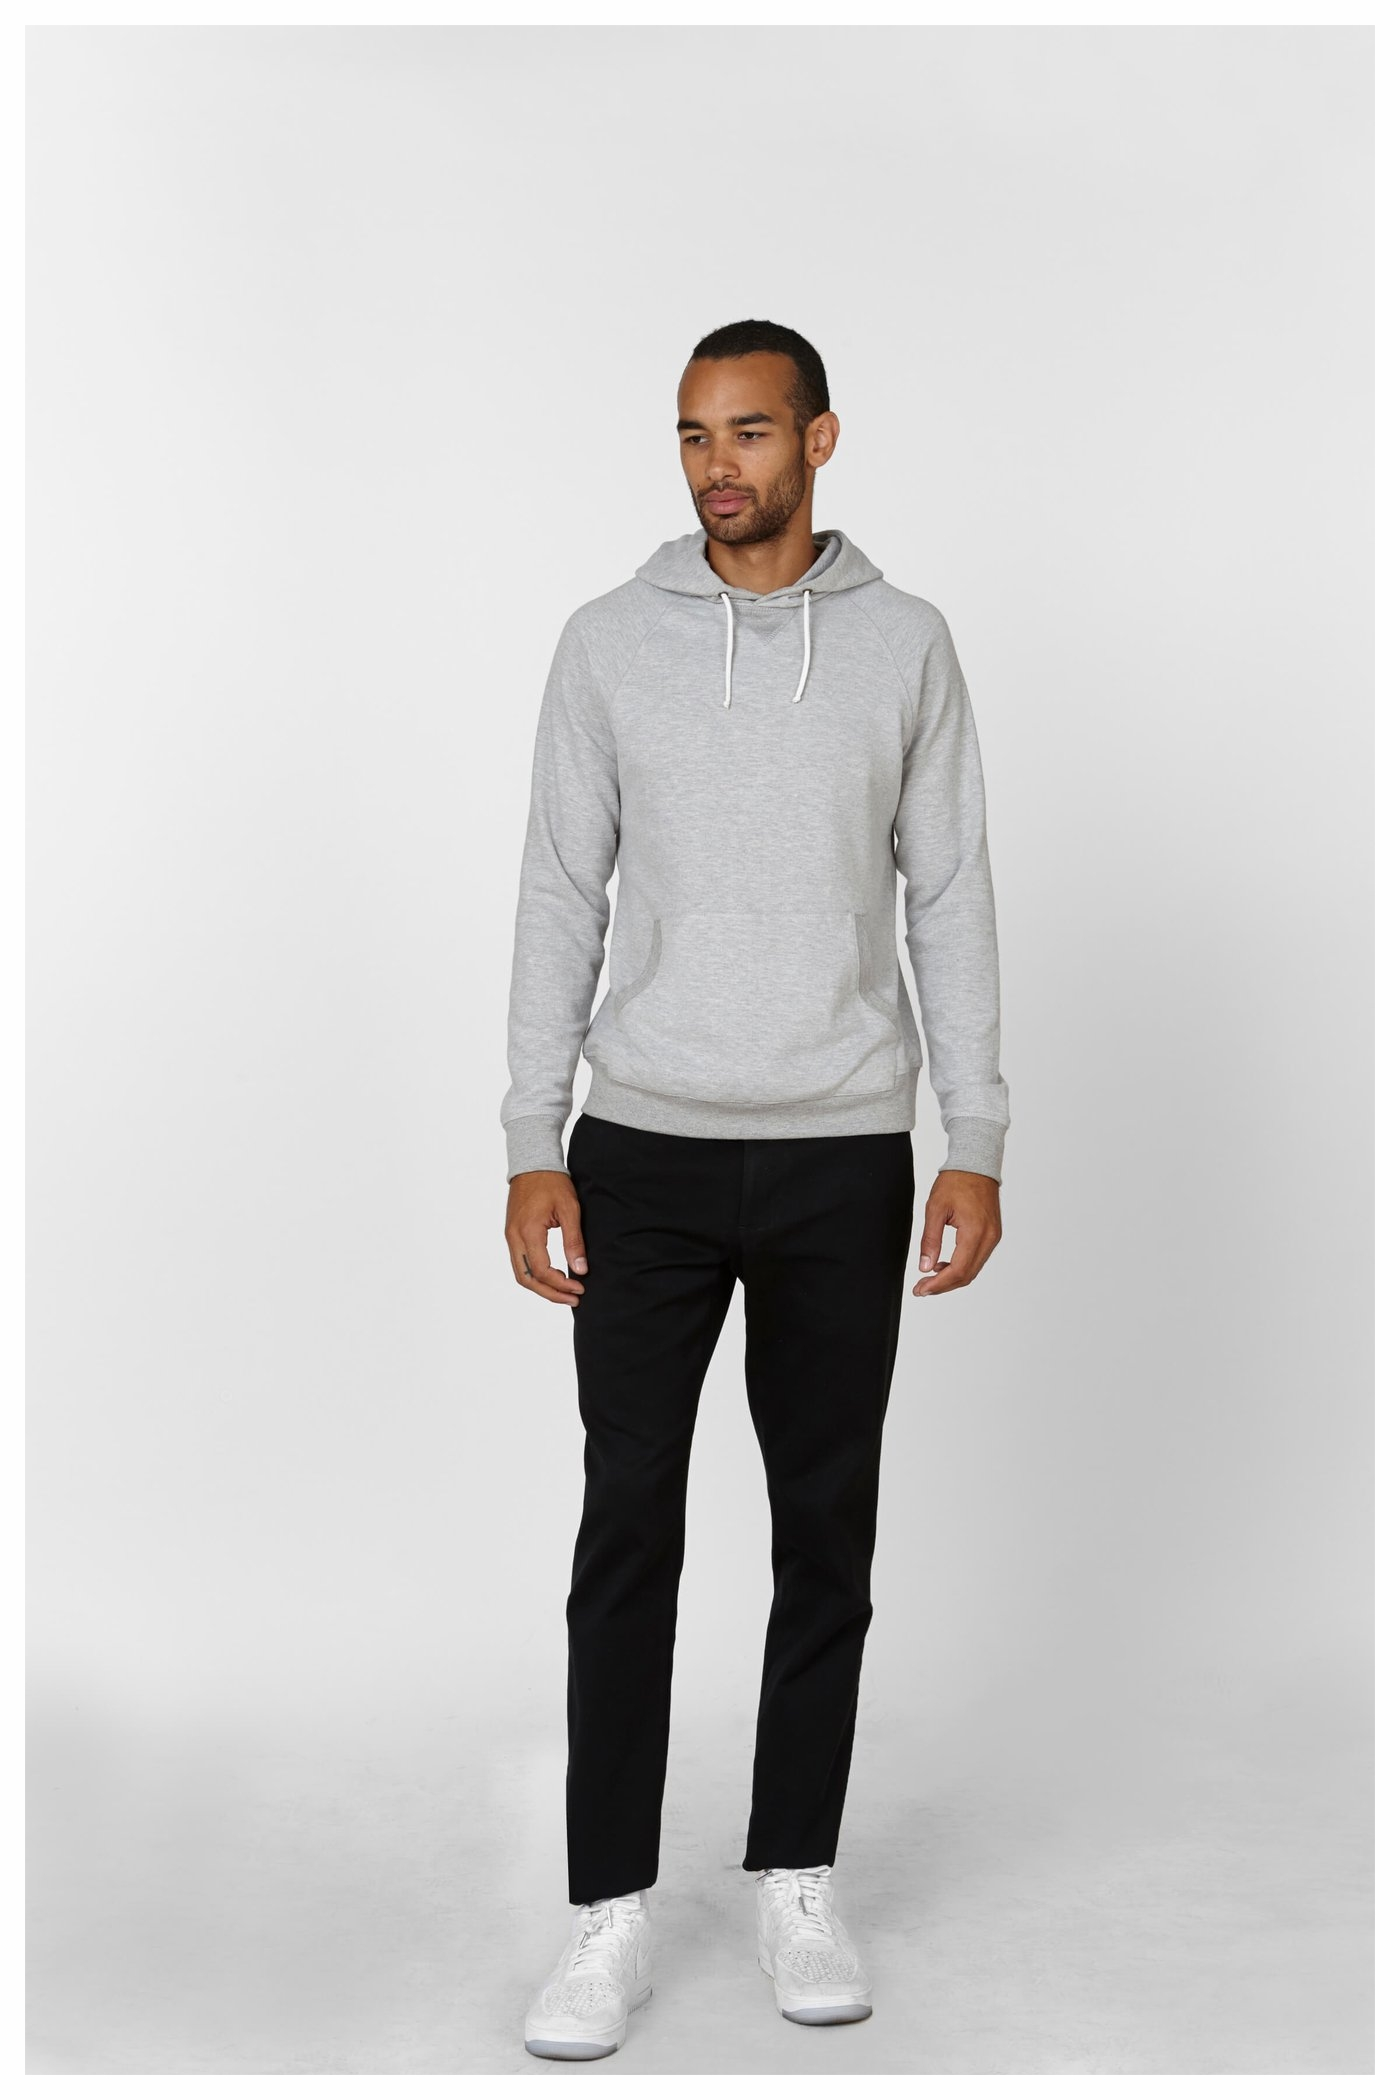 hoodie-heather-grey-1_1400x.jpg